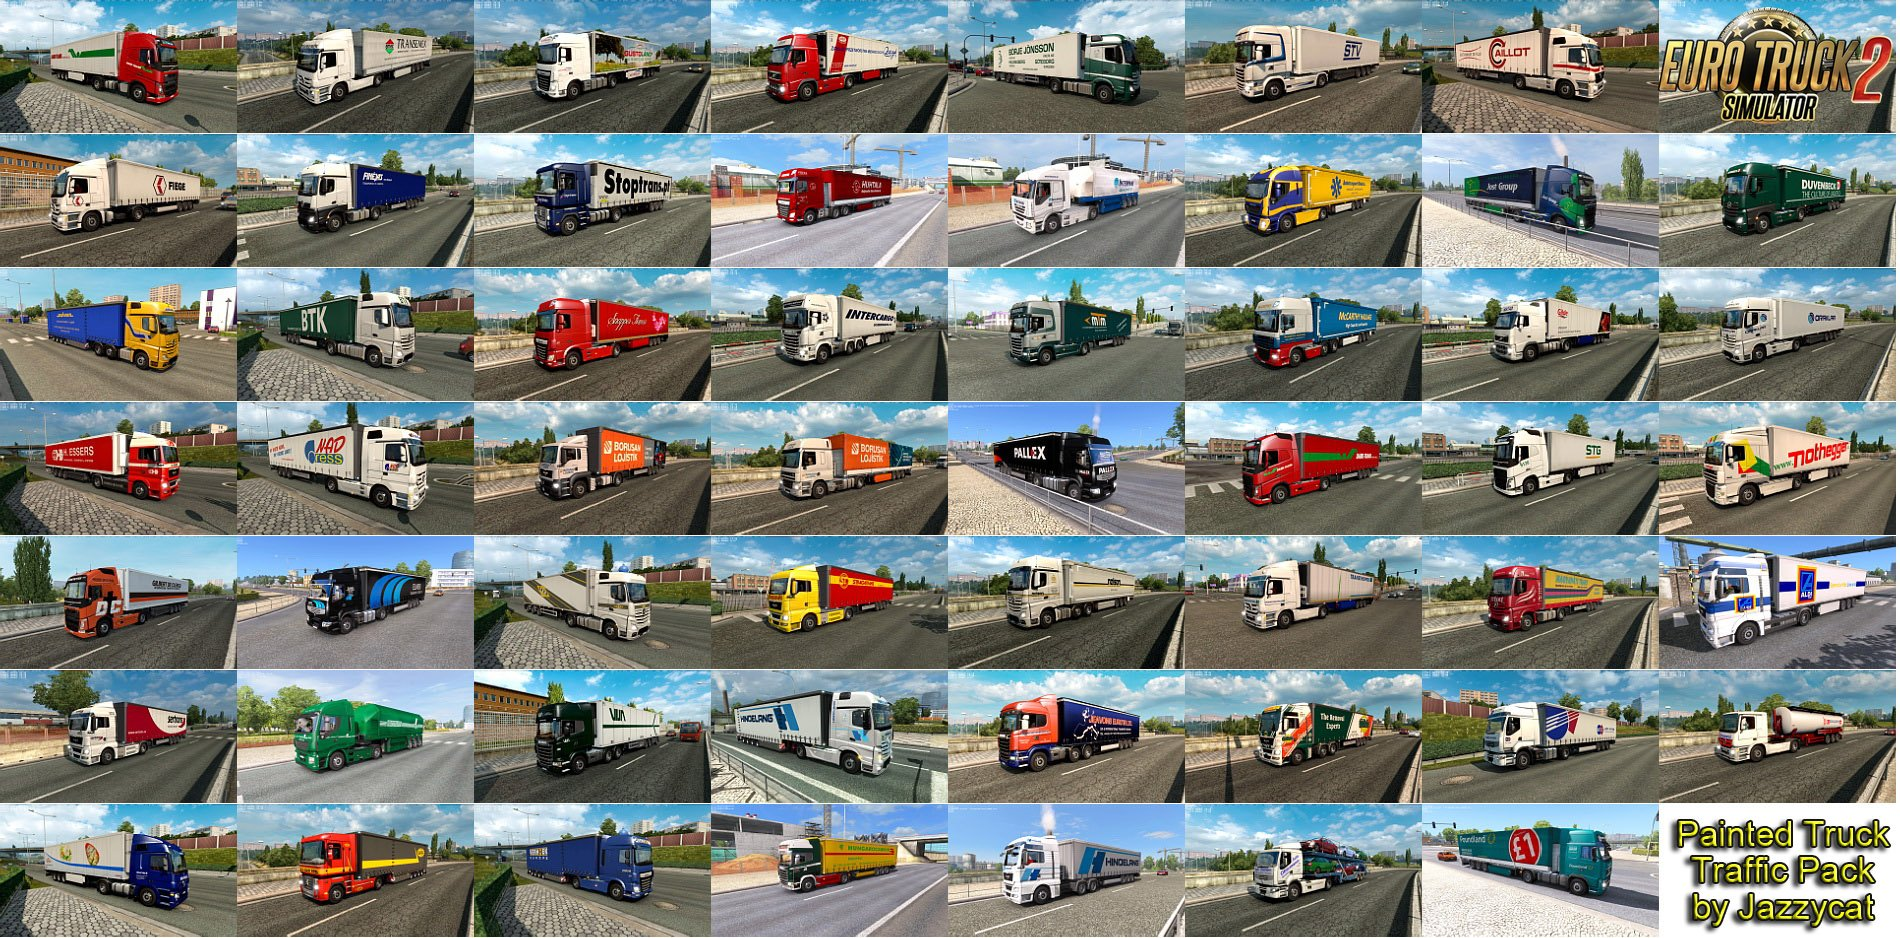 Painted Truck Traffic Pack v6.3 by Jazzycat